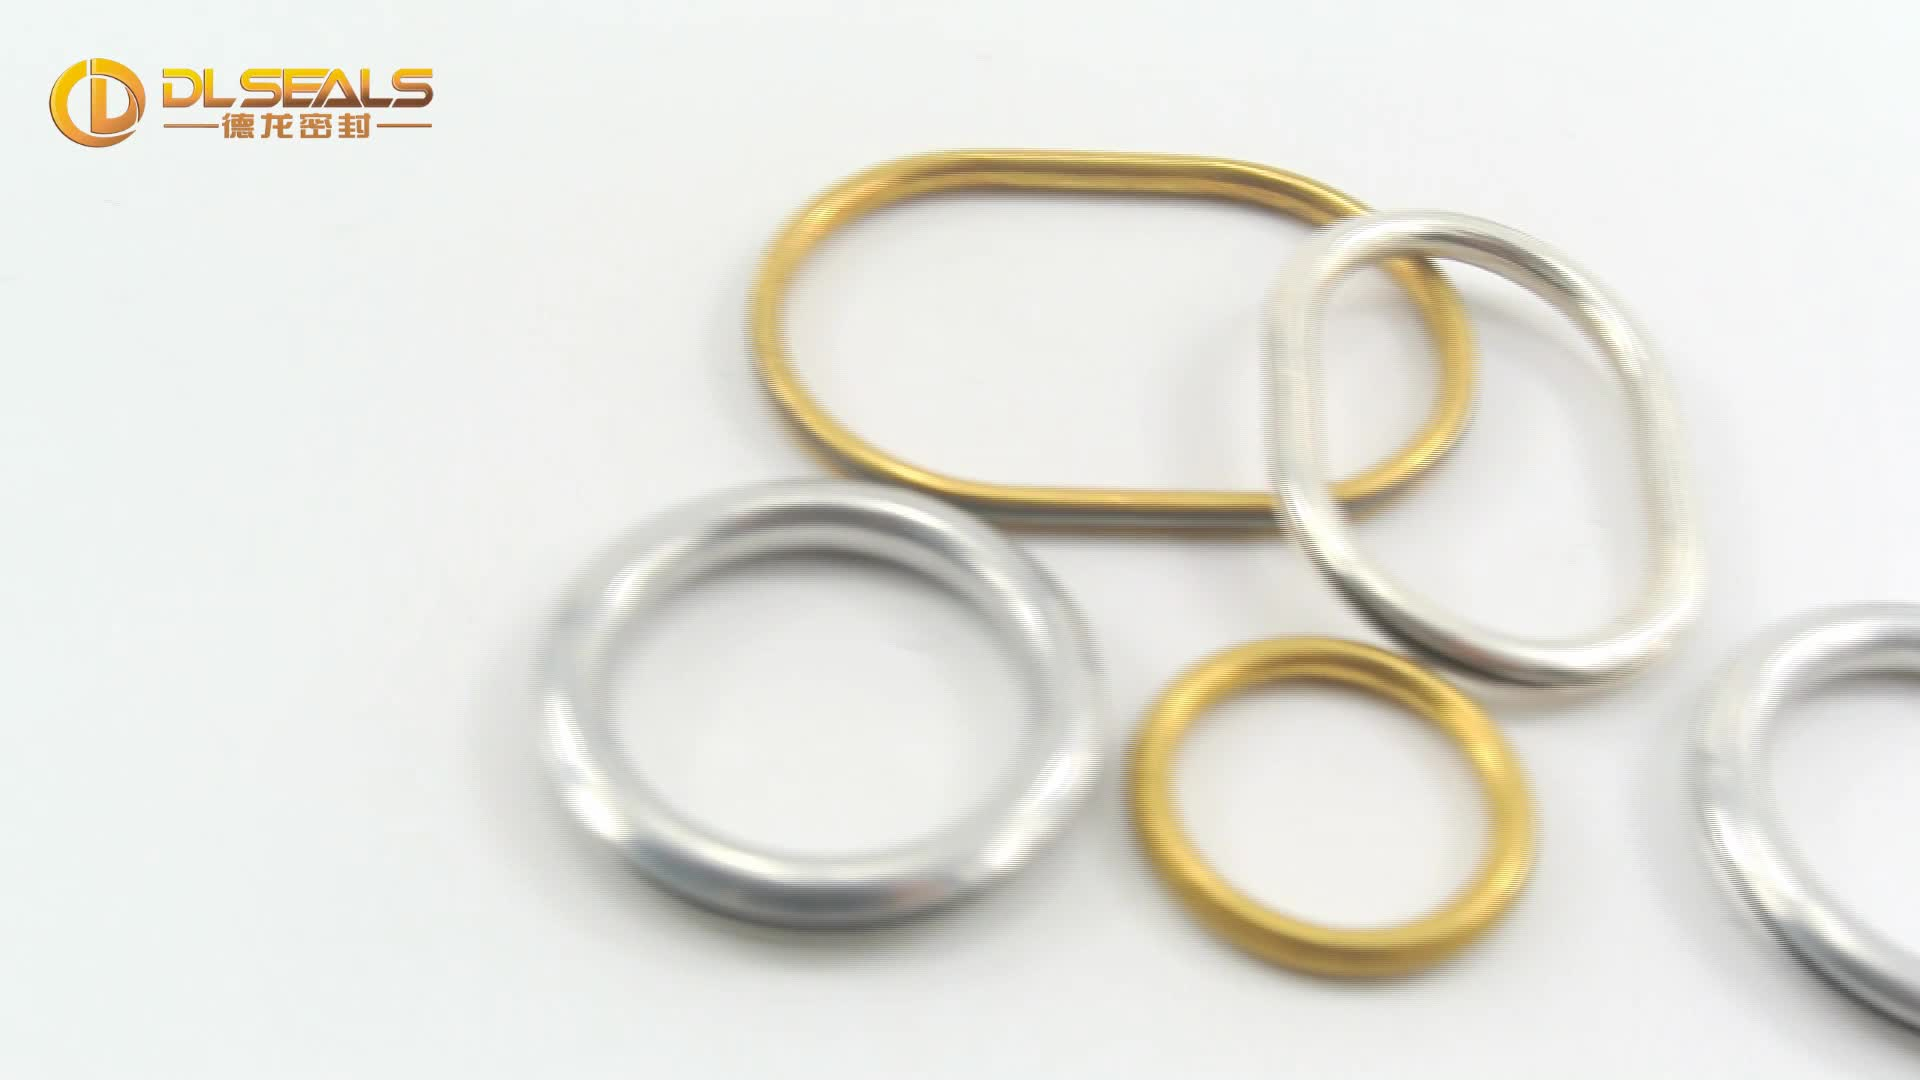 DLseals stainless steel o rings hollow o-rings for Clothing